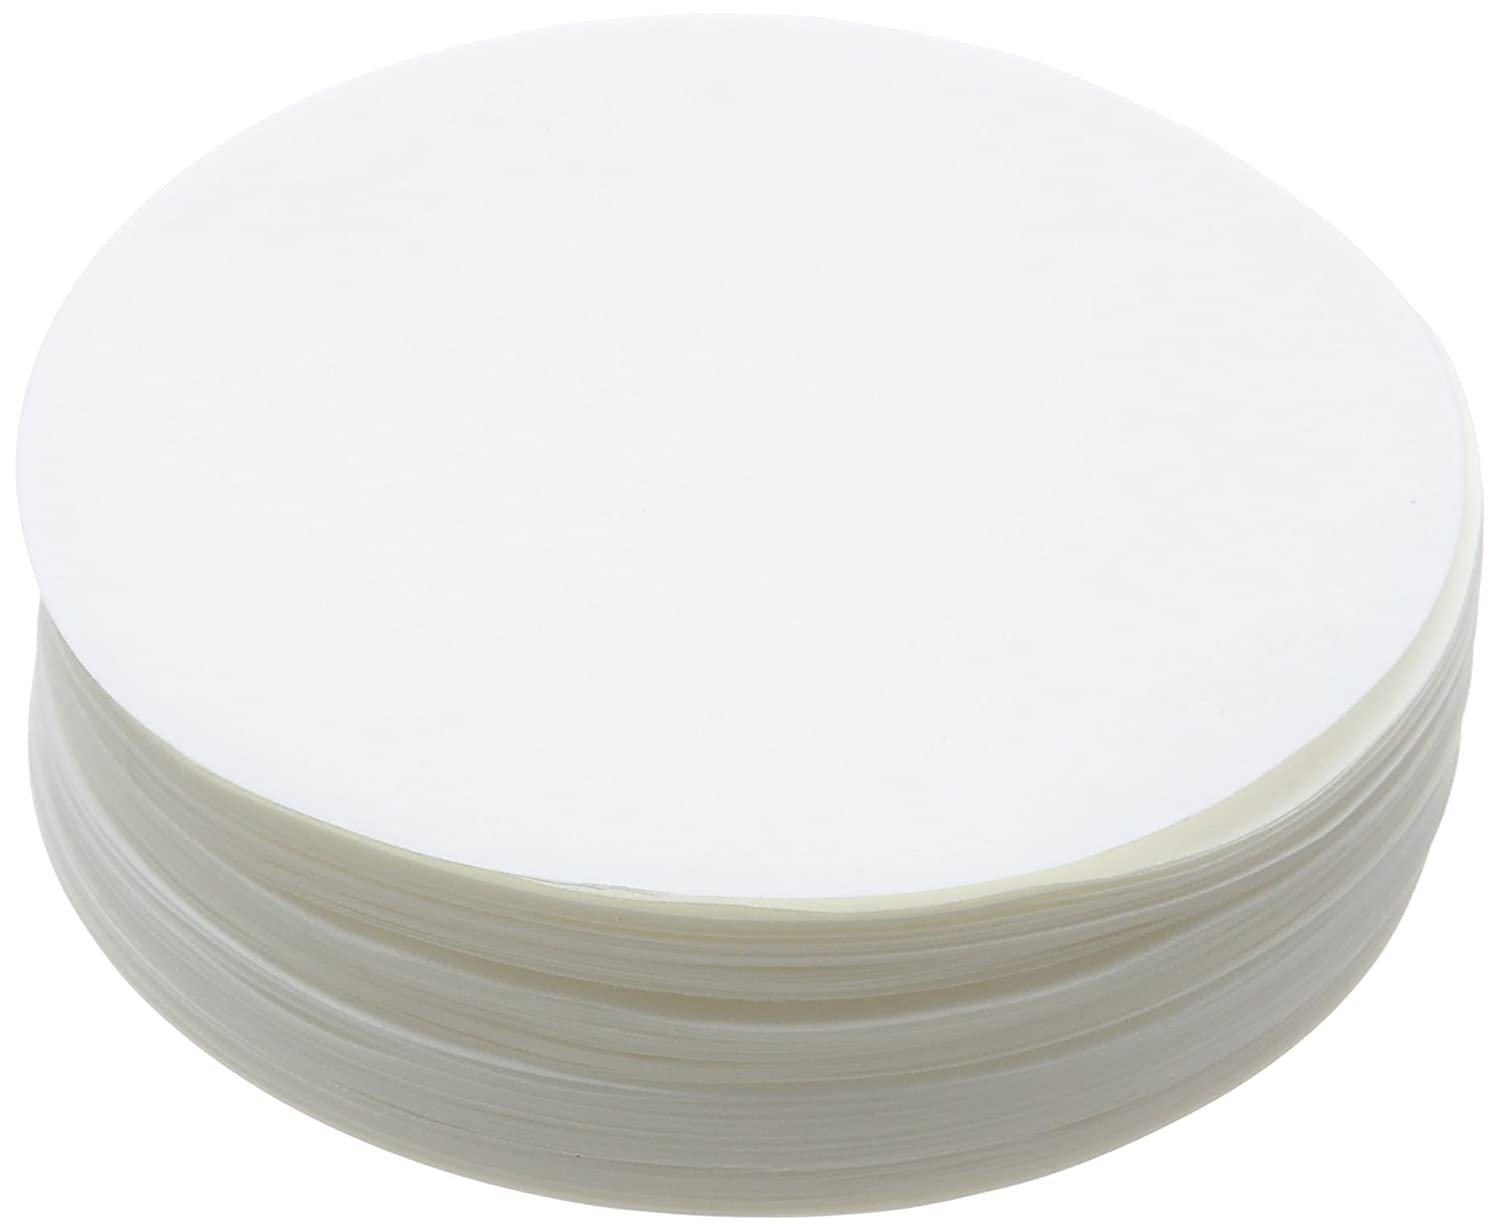 Camlab 1171167 Grade 15 [42] Quantitative Filter Paper, Very Slow Filtering, Ashless, 42.5 mm Diameter (Pack of 100)